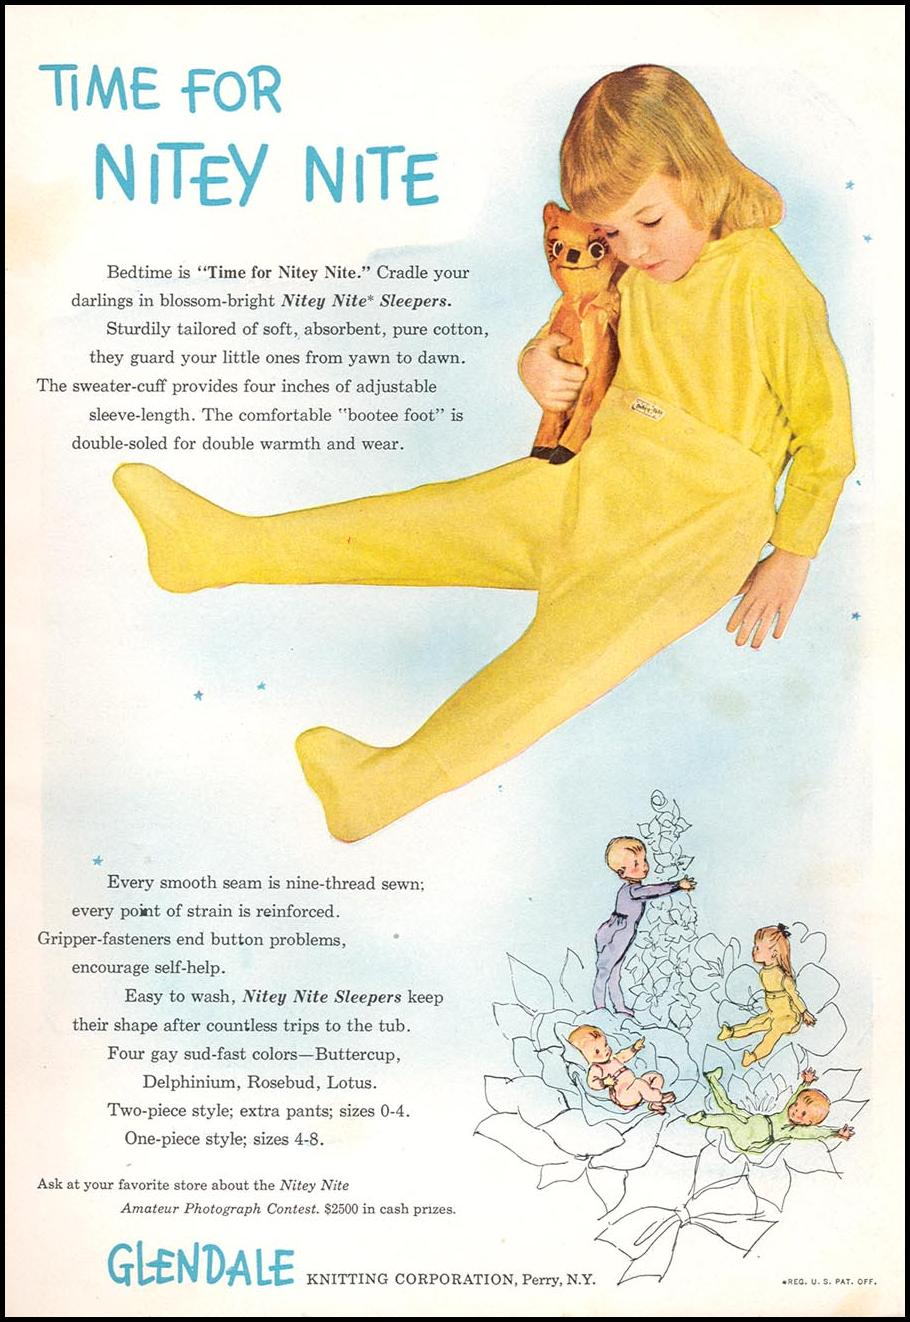 CHILDRENS' PAJAMAS WOMAN'S DAY 09/01/1948 INSIDE BACK